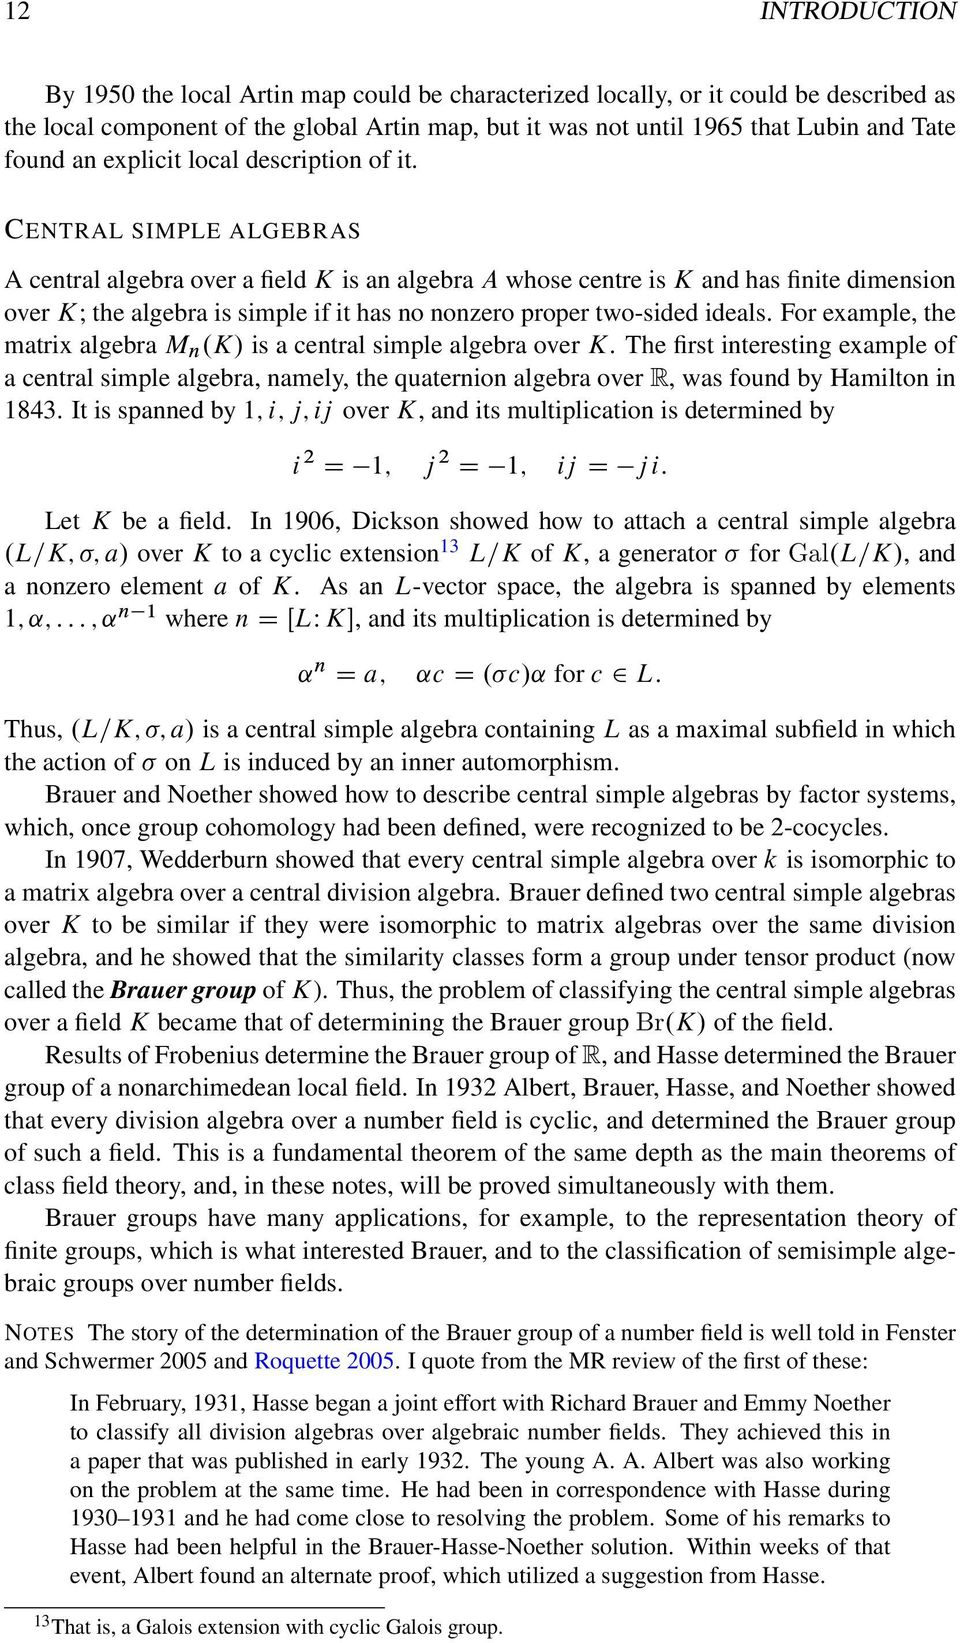 CENTRAL SIMPLE ALGEBRAS A central algebra over a field K is an algebra A whose centre is K and has finite dimension over K; the algebra is simple if it has no nonzero proper two-sided ideals.